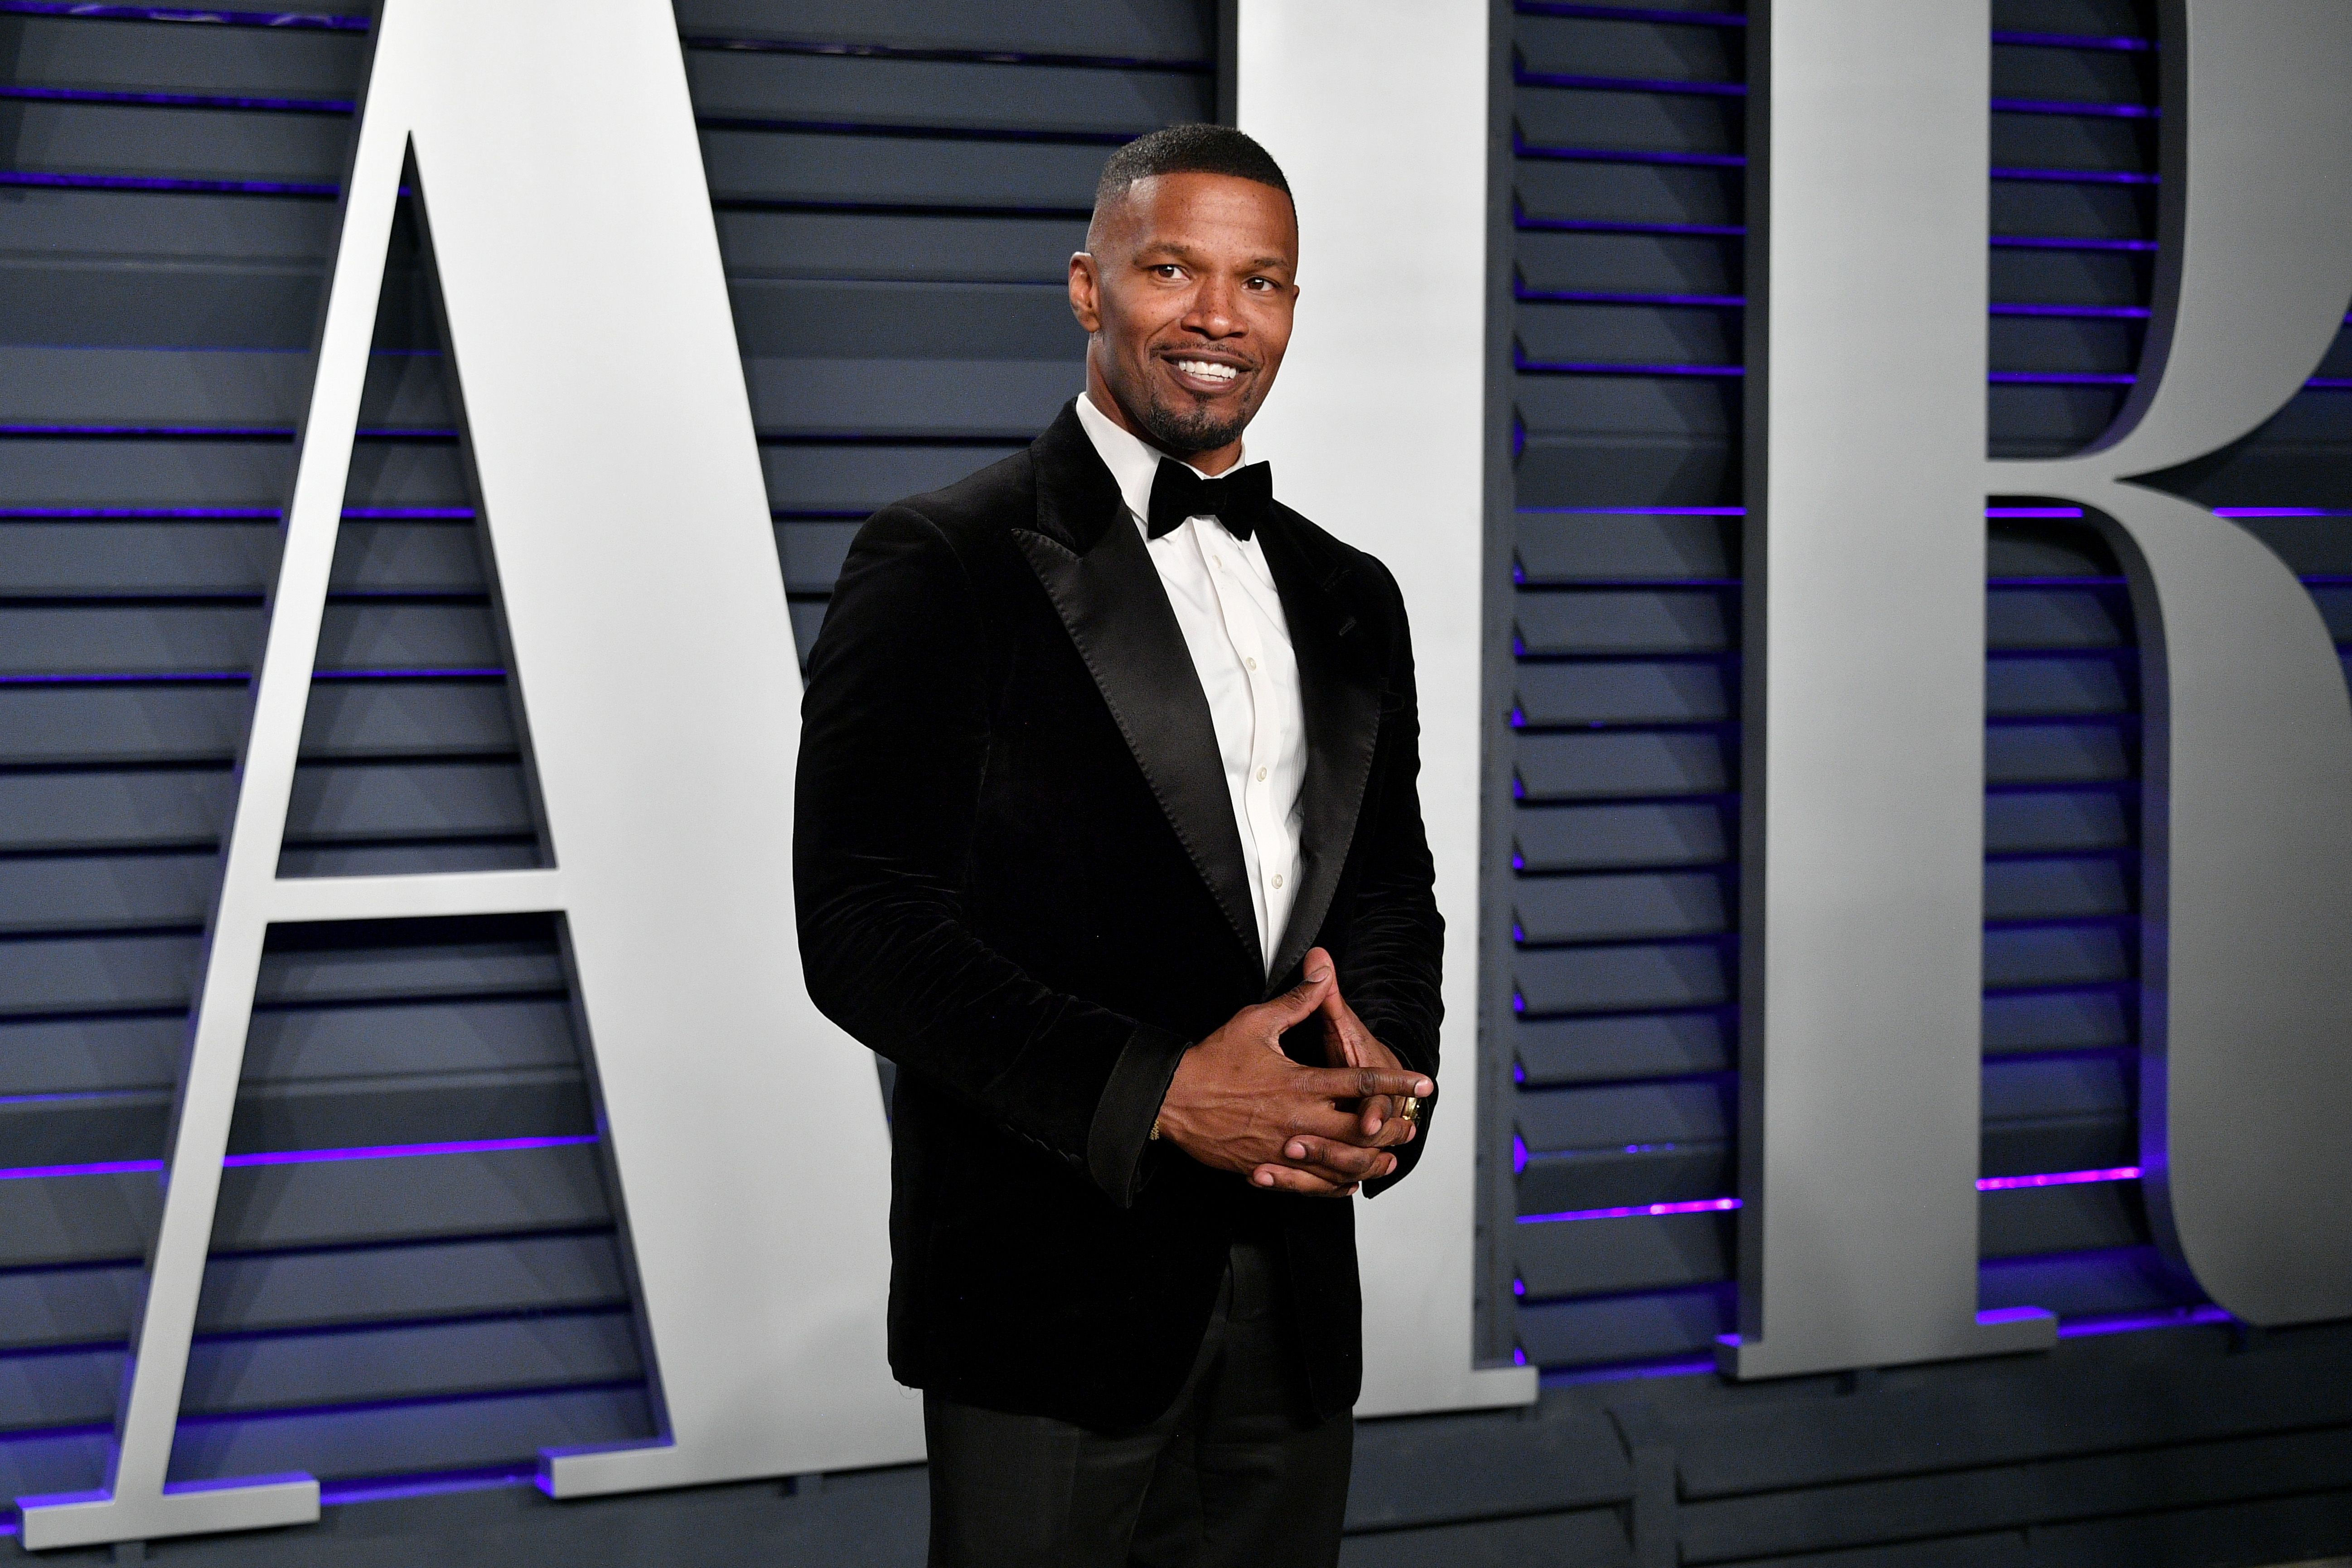 Jamie Foxx at the Vanity Fair Oscar Party on February 24, 2019 in California. | Photo: Getty Images